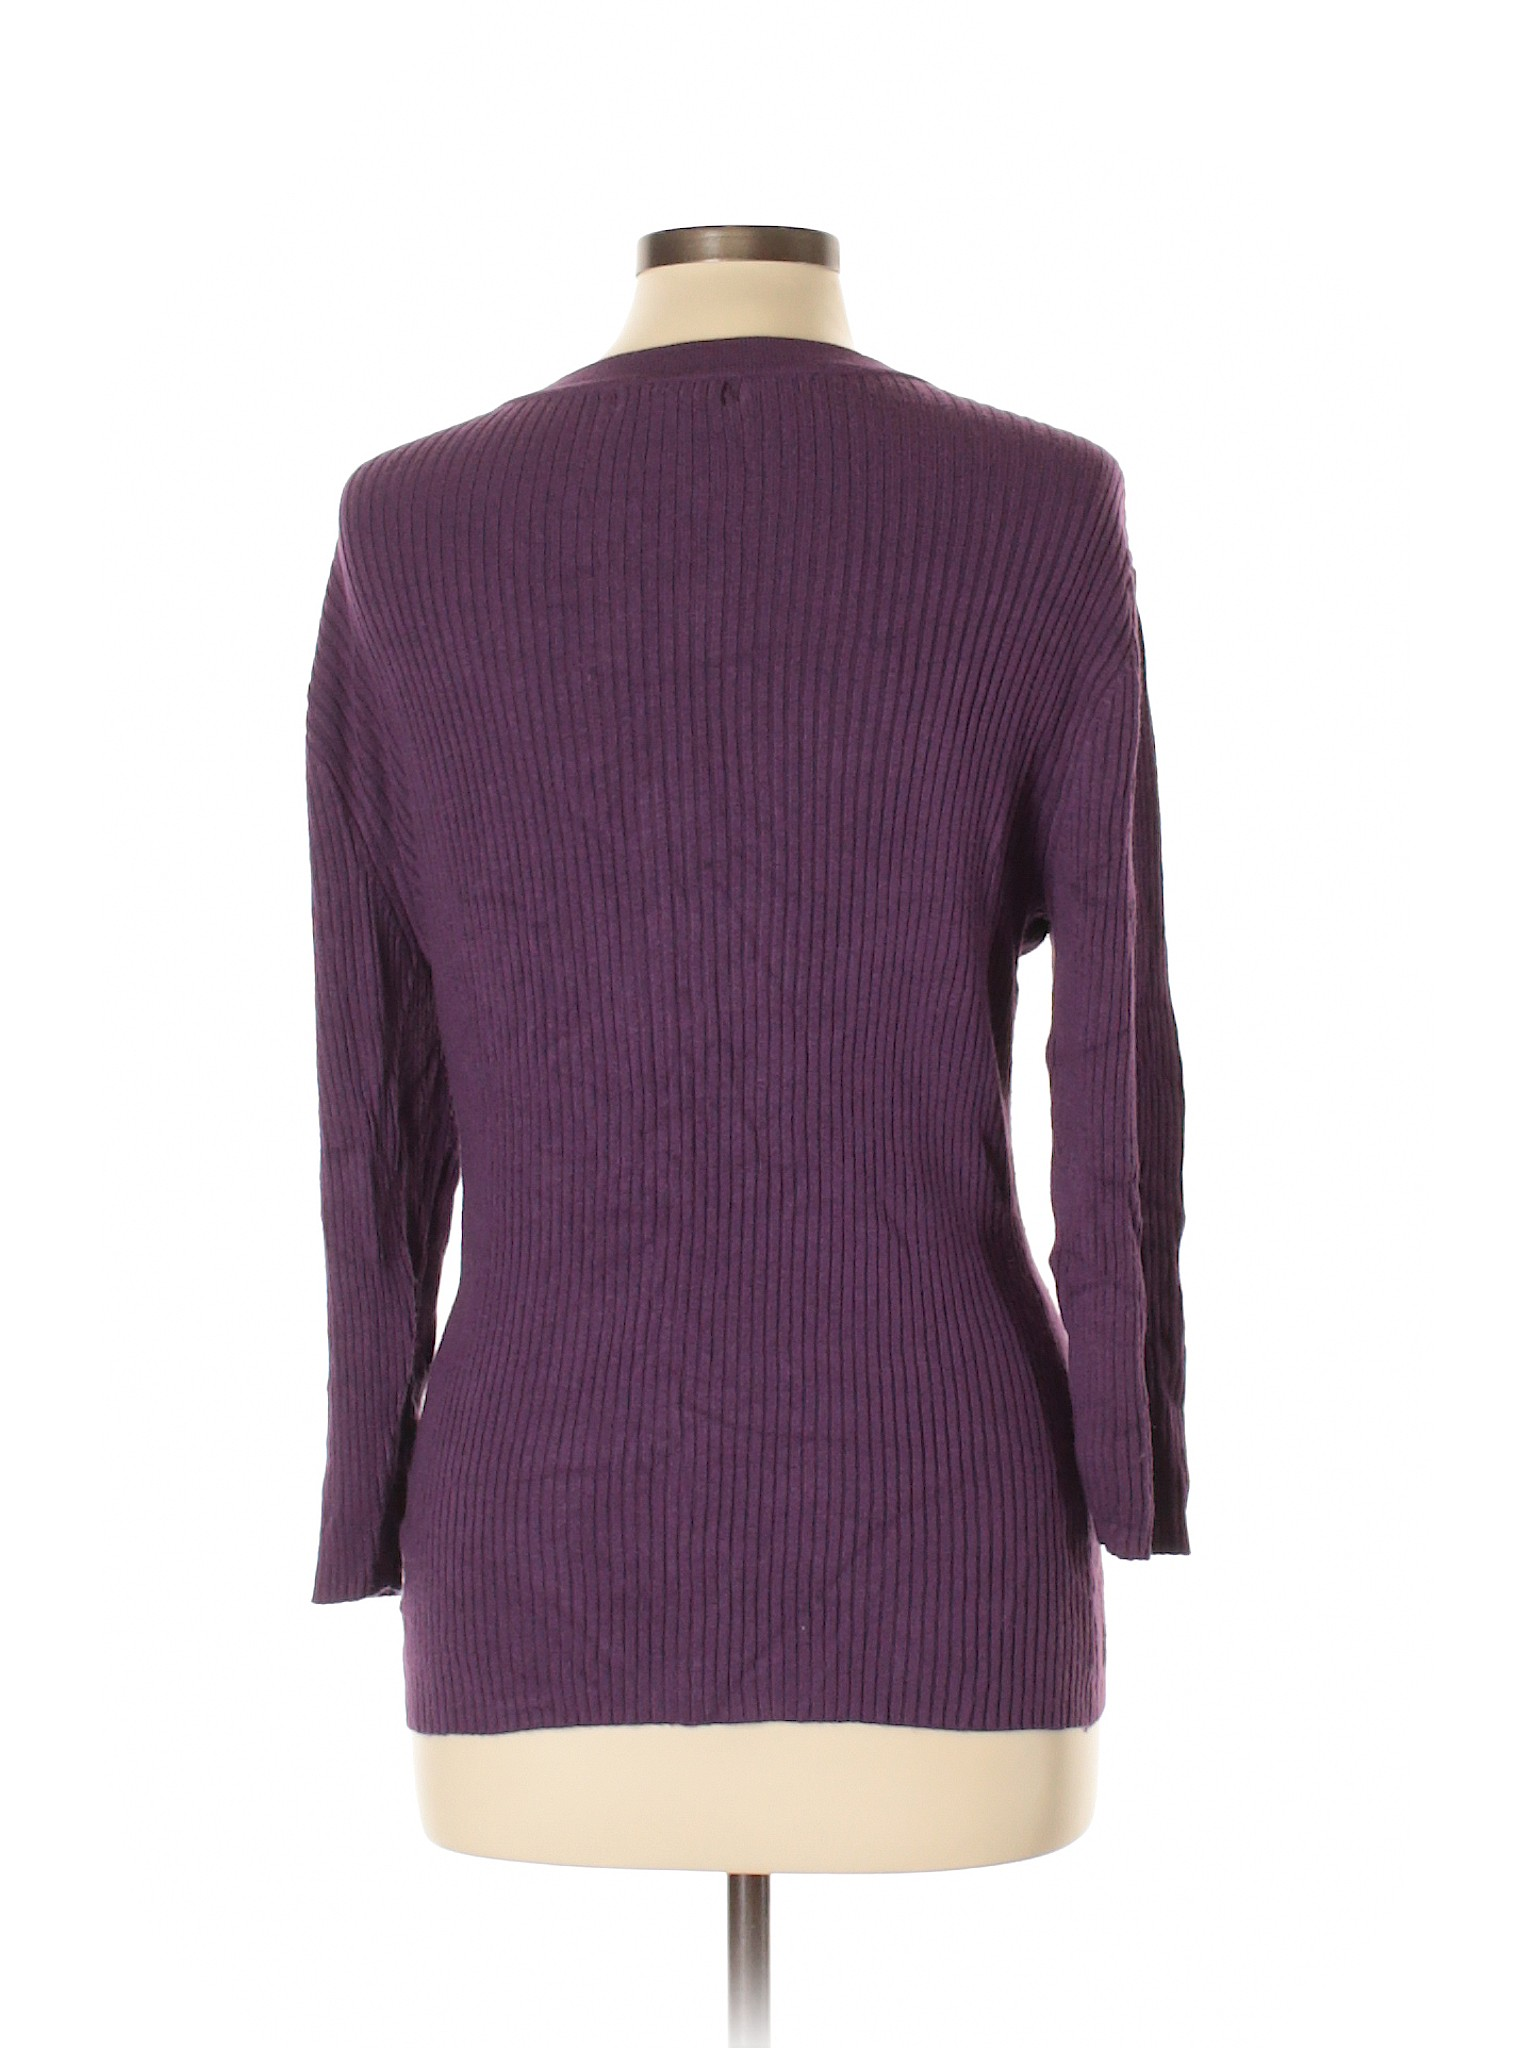 New York U0026 Company Cardigan: Size 12.00 Dark Purple Womenu0027s Sweaters U0026  Sweatshirts   $10.99